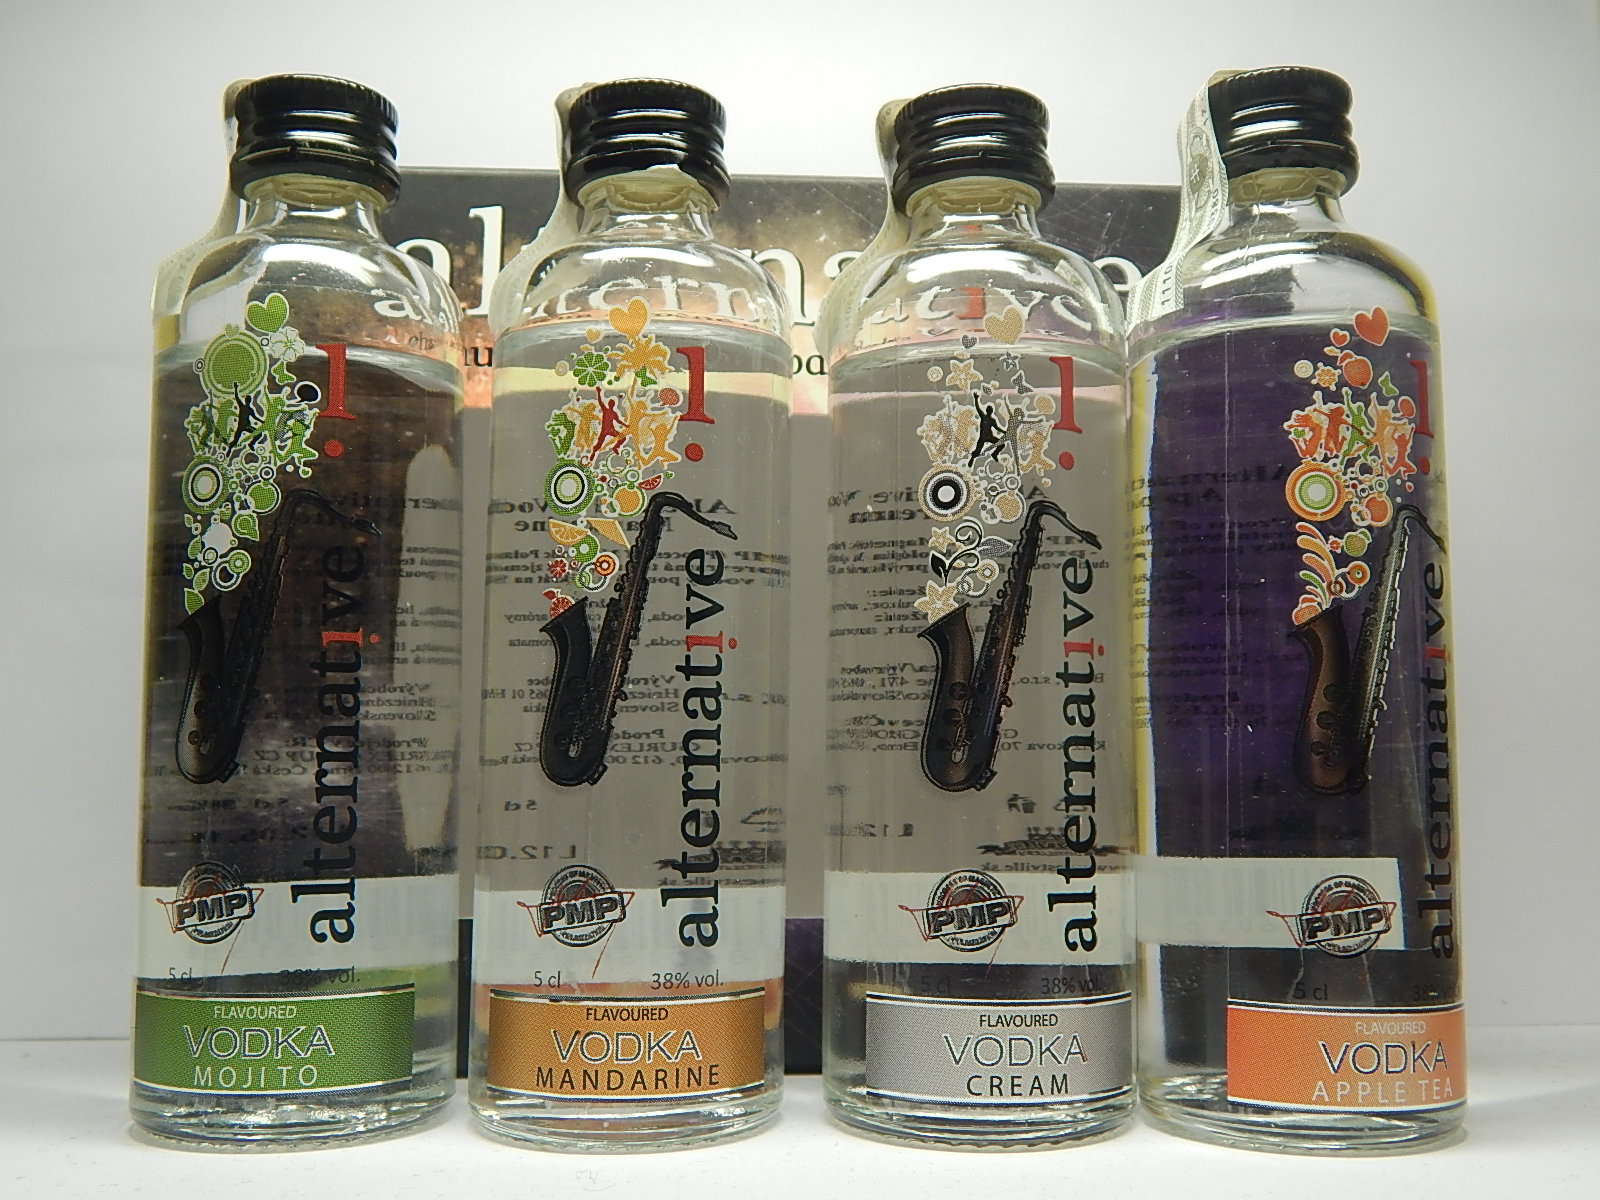 NESTVILLE Vodka set